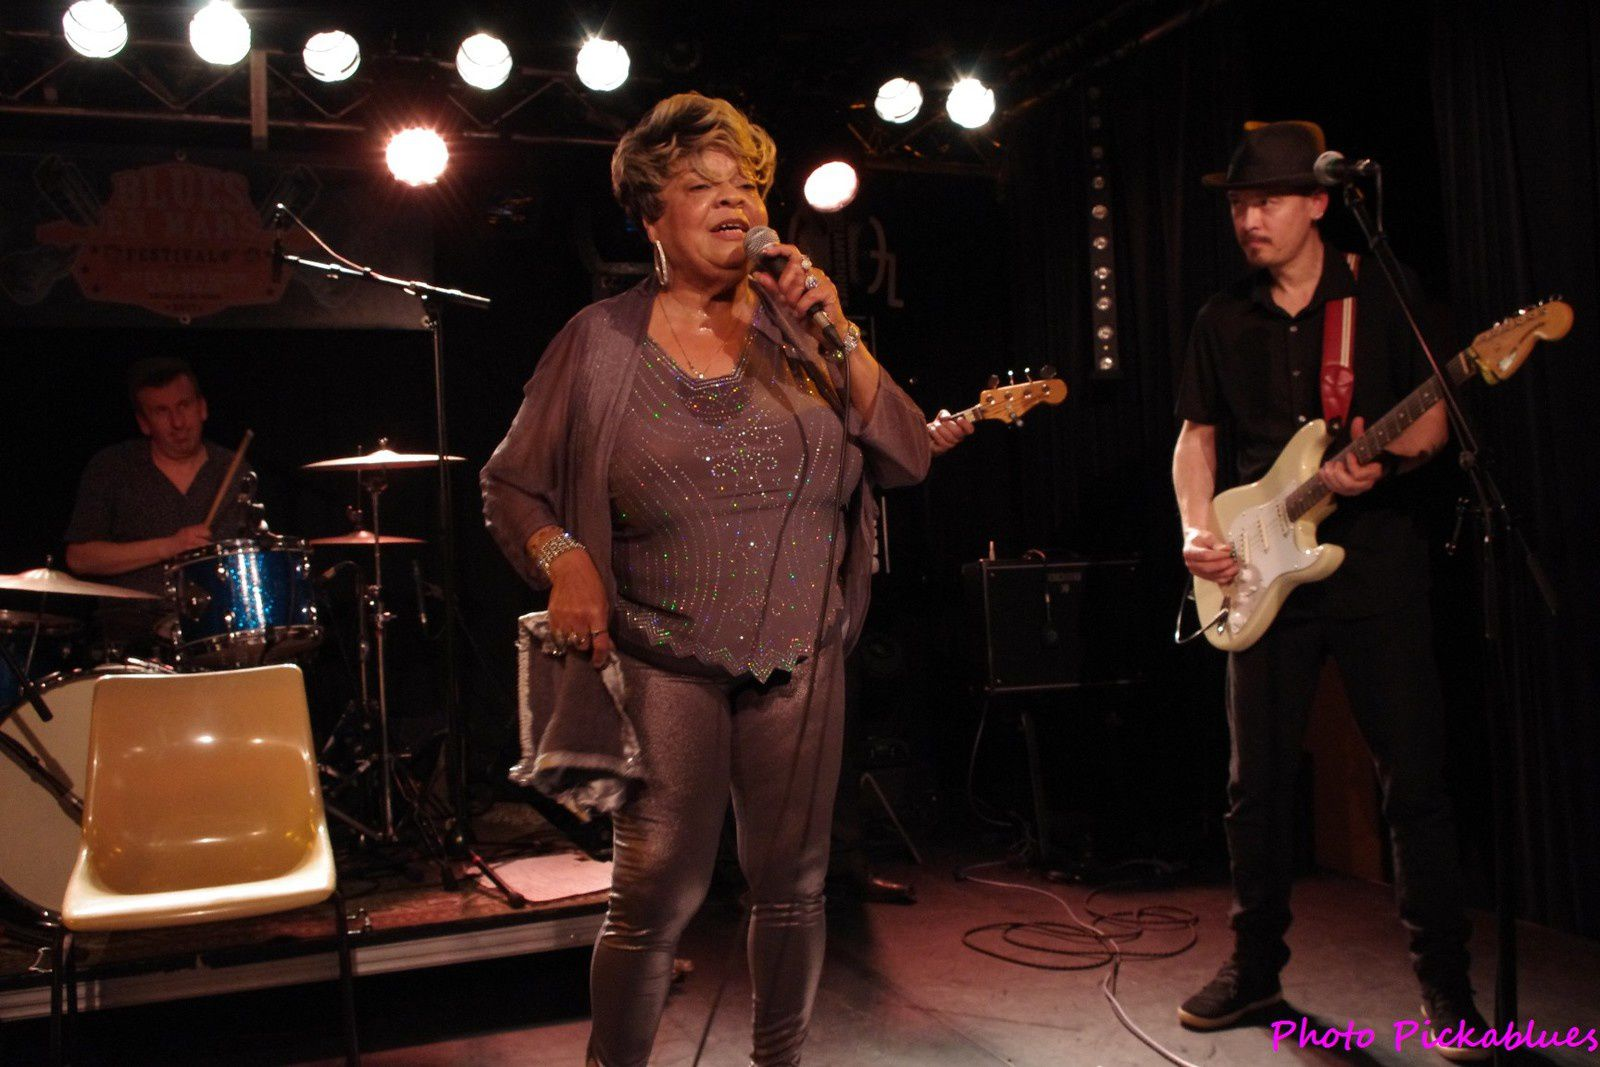 Sandra Hall & The French Blues Explosion - 17 mars 2017 - La Boite à Musiques, Wattrelos (59)